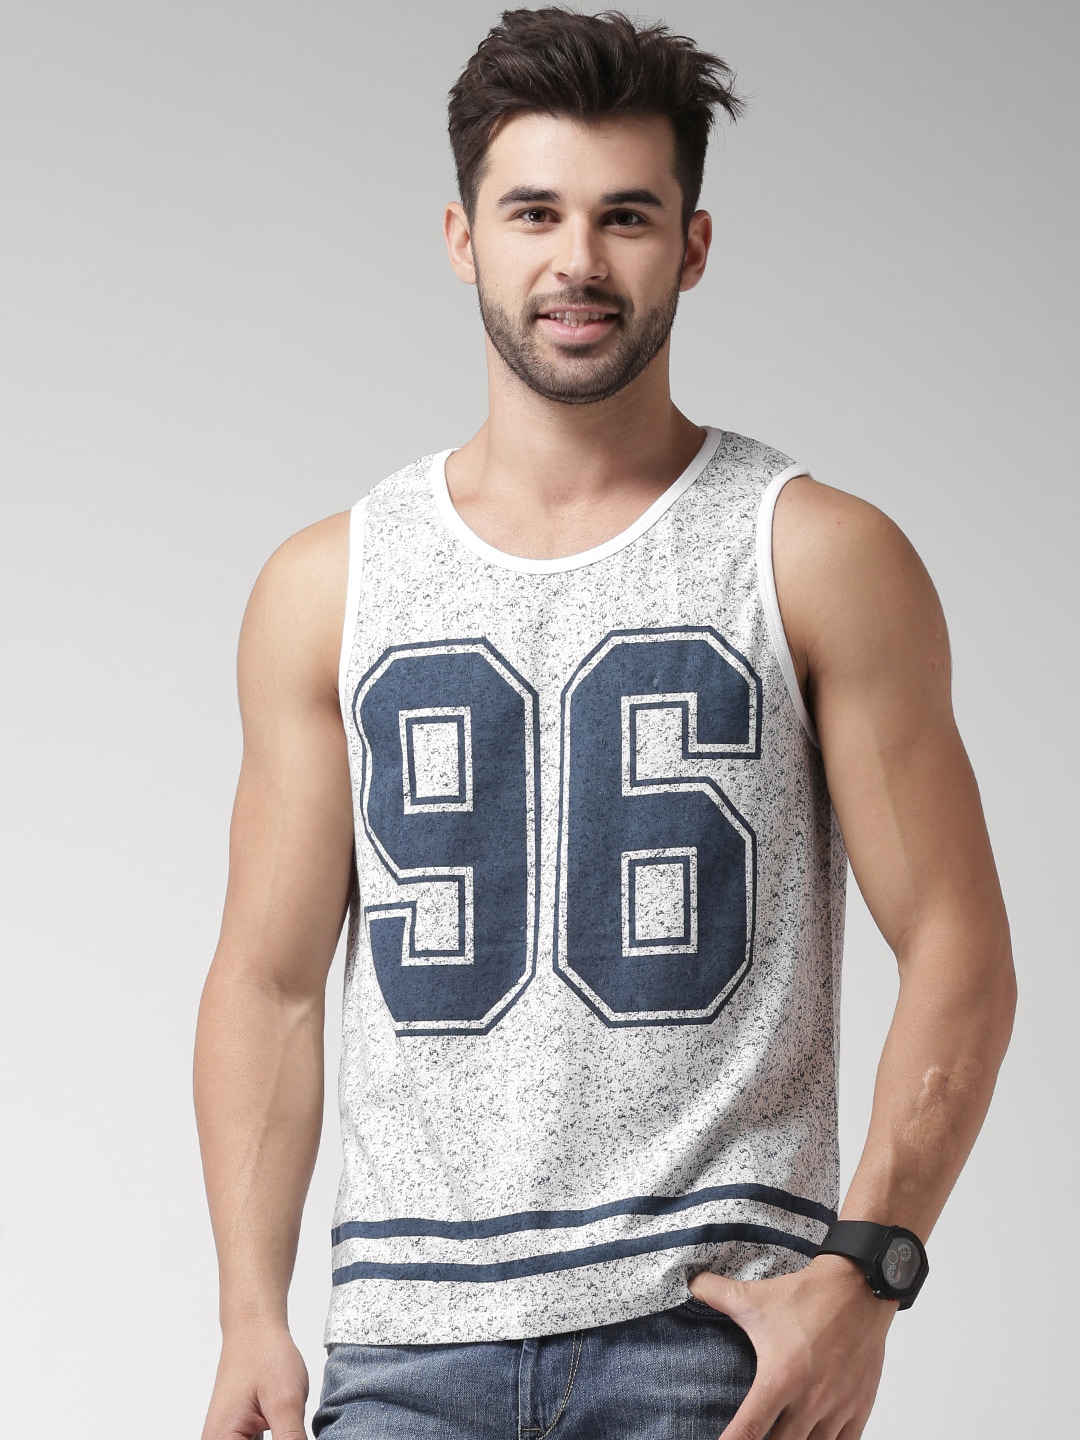 d002ccabcb2 Men s Sleeveless T-Shirts - Buy Sleeveless T-Shirts For Men Online